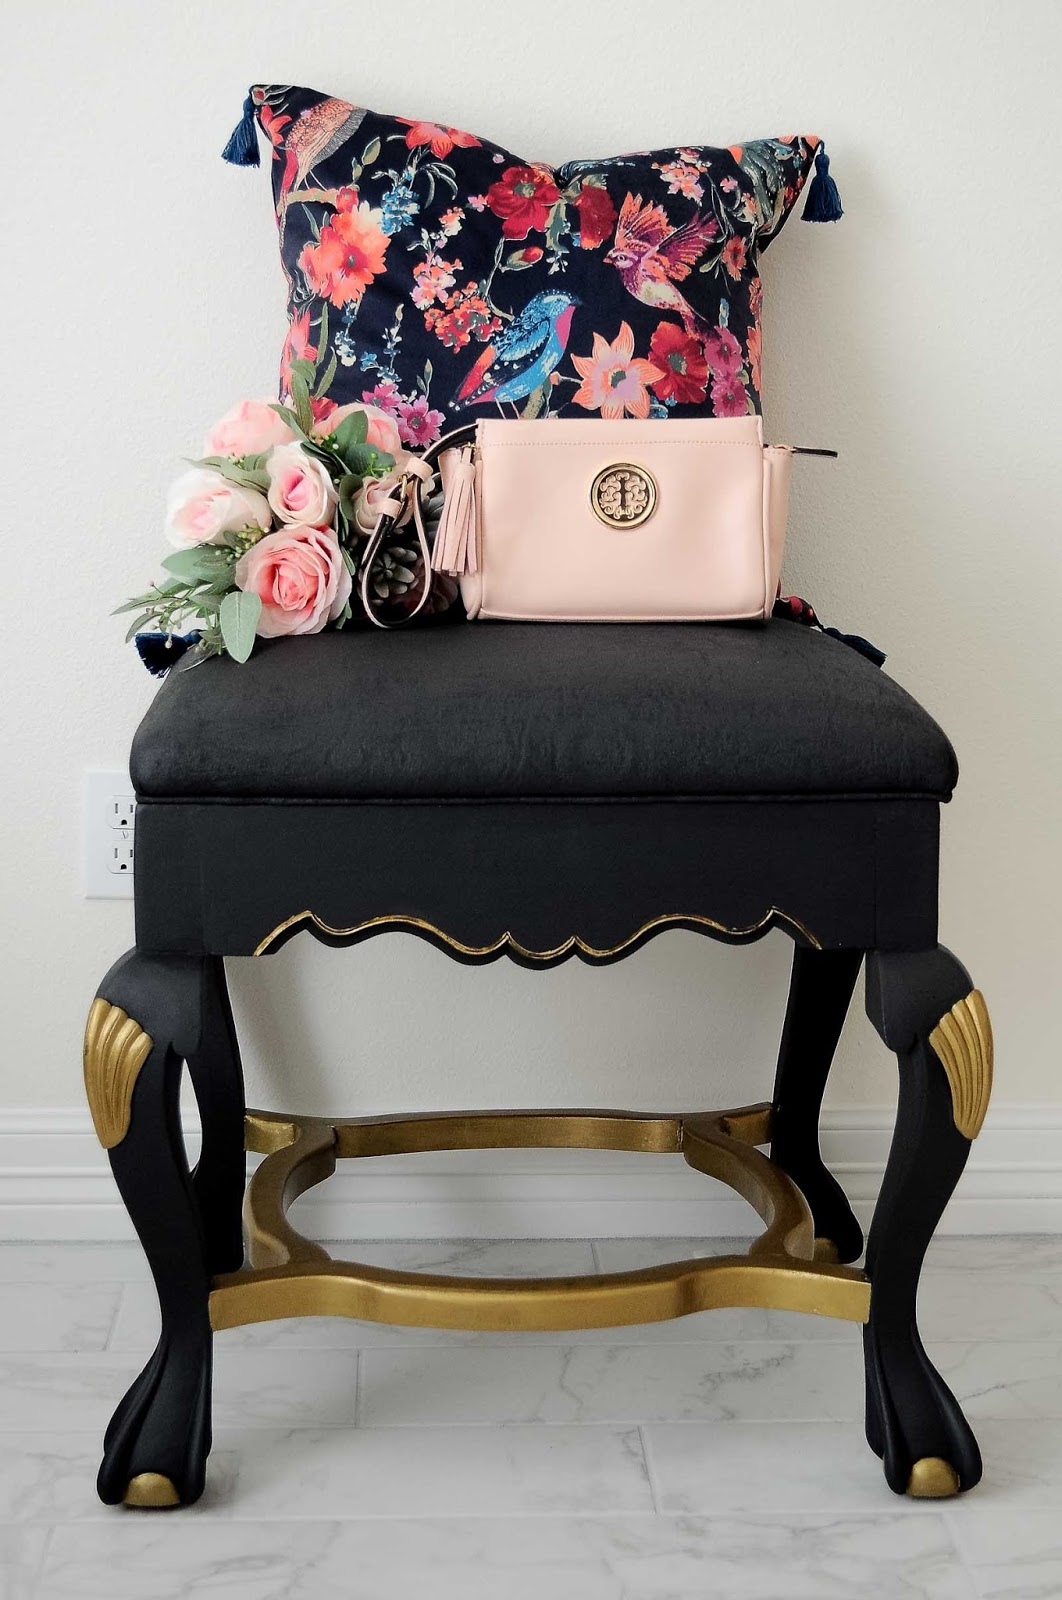 Makeover a thrifted ottoman by painting the fabric and wood using Velvet Finishes paint. What a great DIY tutorial!